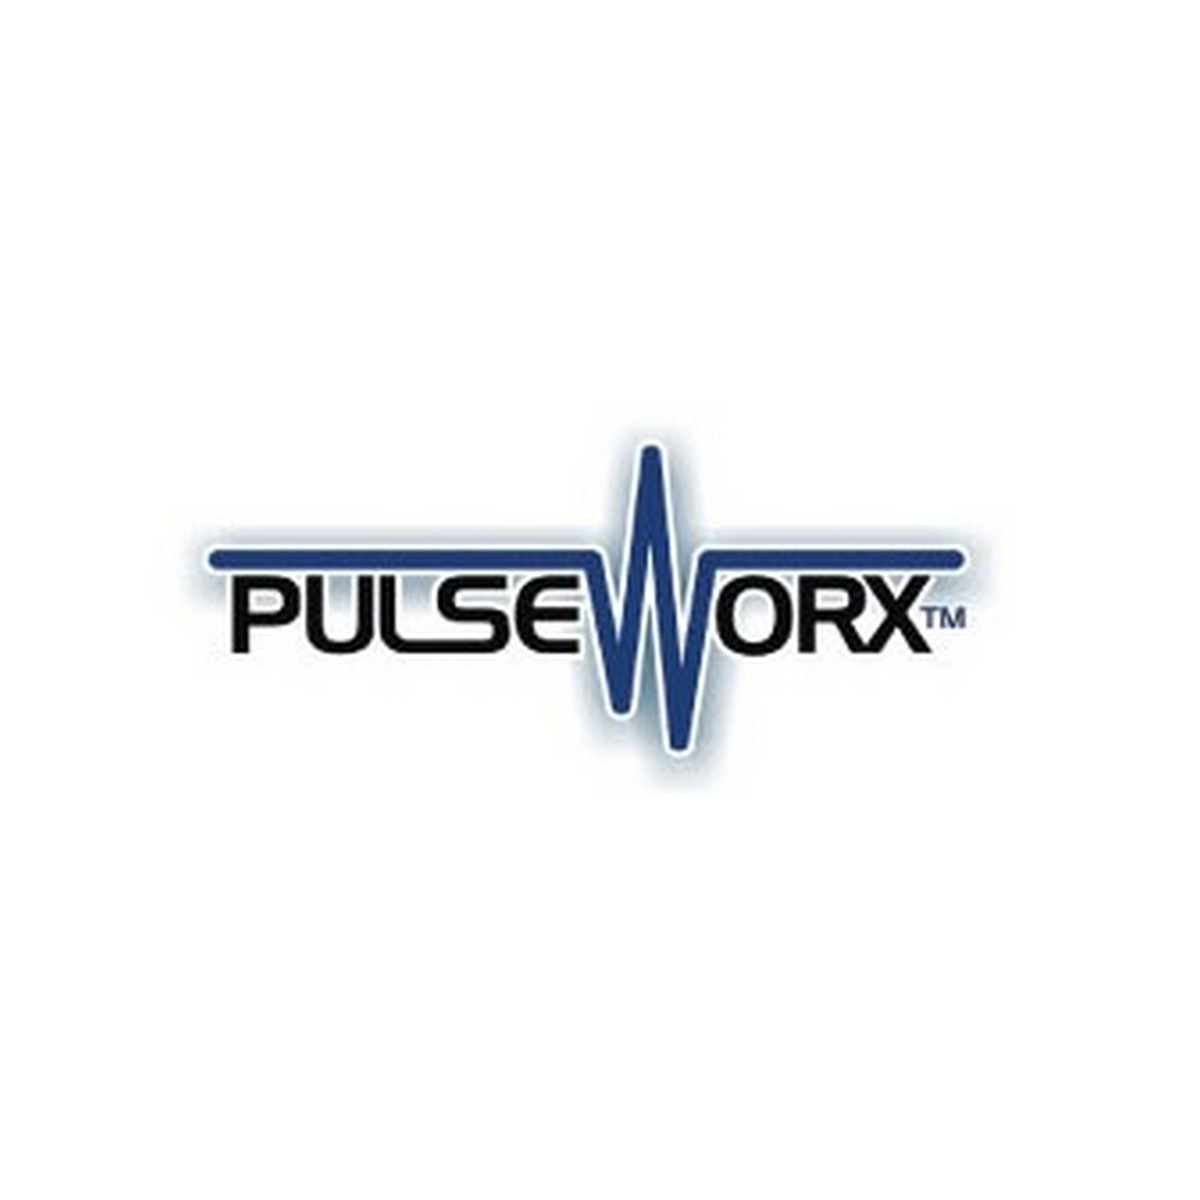 Pulseworx CEB7 Single Custom Button for KPCW-7 or KPCD-7